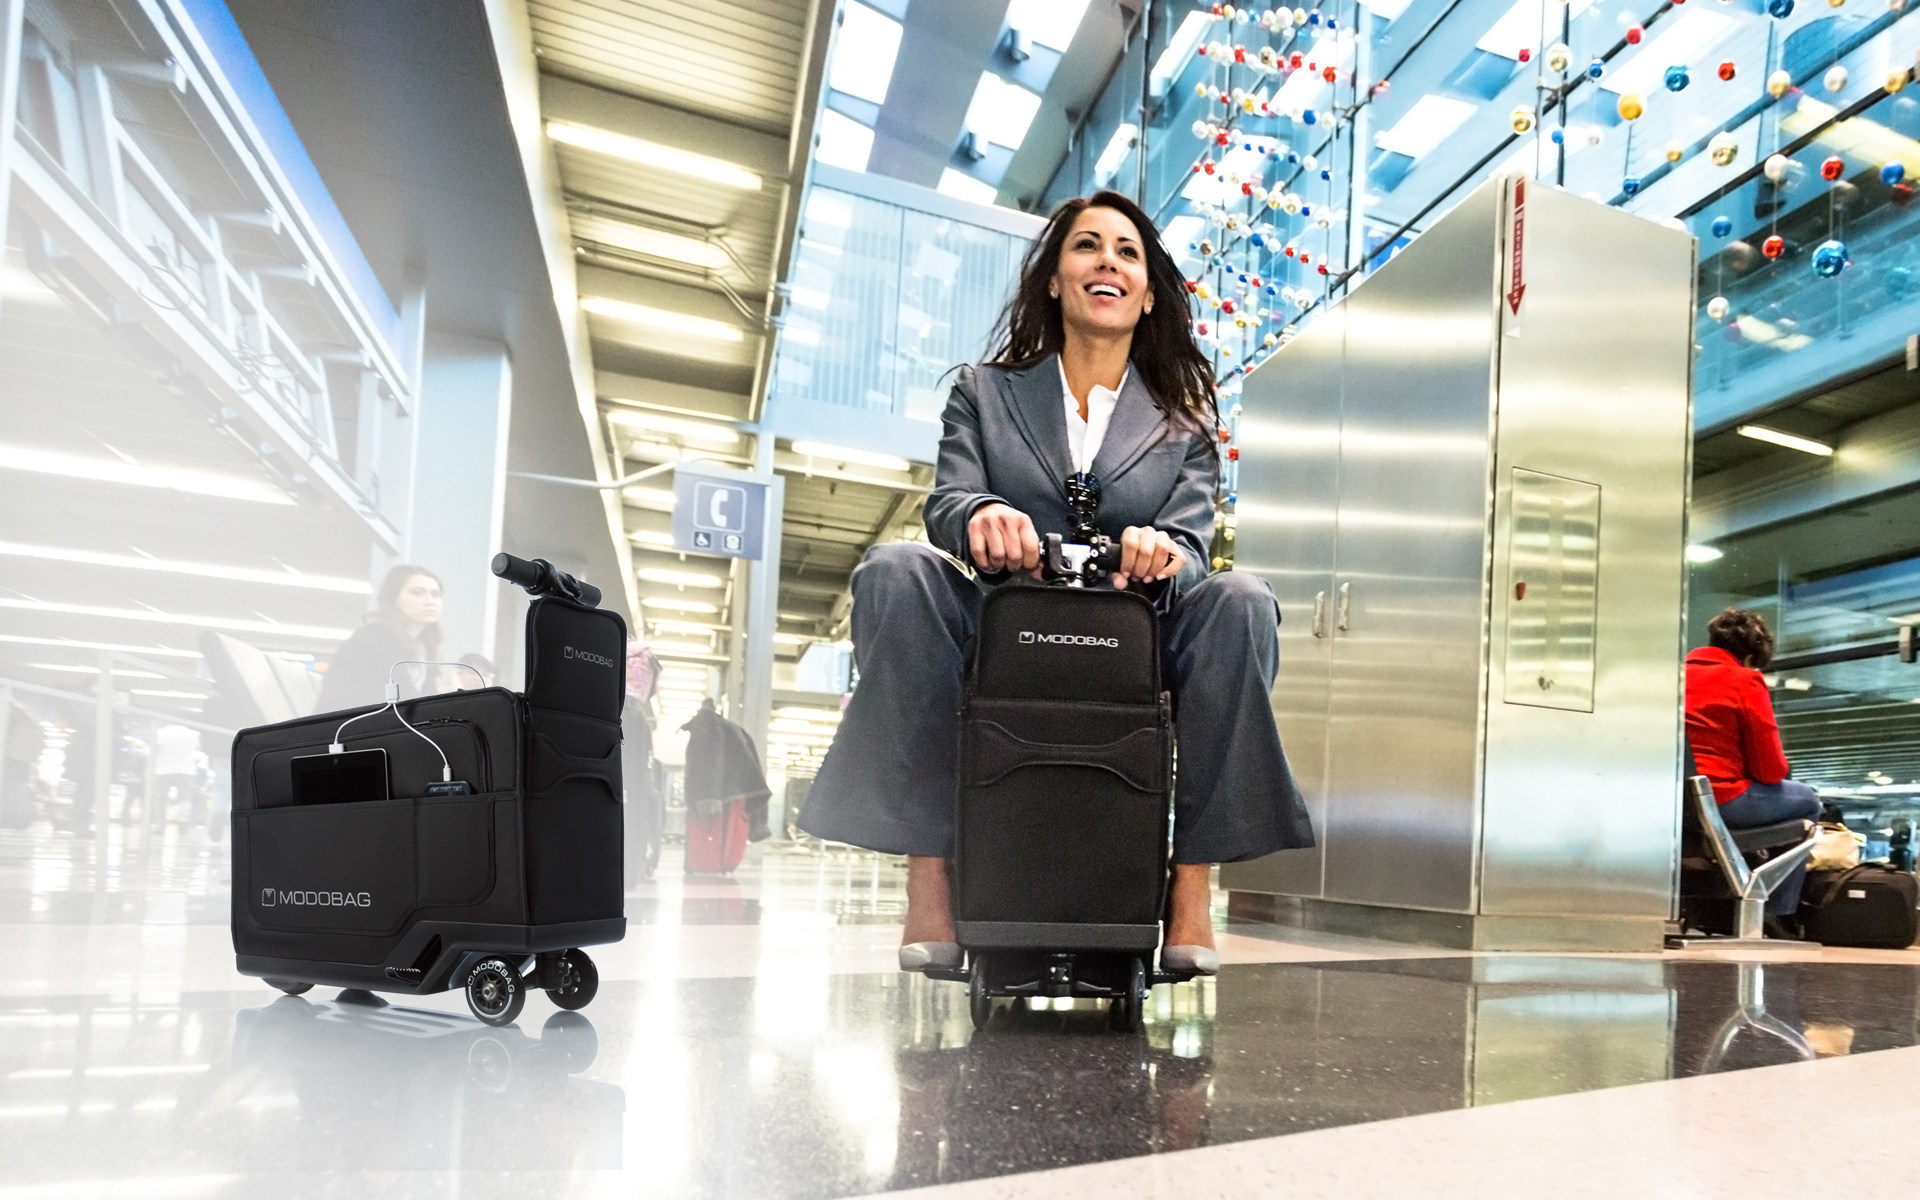 Modobag Introduces World S First Rideable Motorized Carry On Suitcase That Gets The Go Travelers Students And Busy Professionals To Their Destination